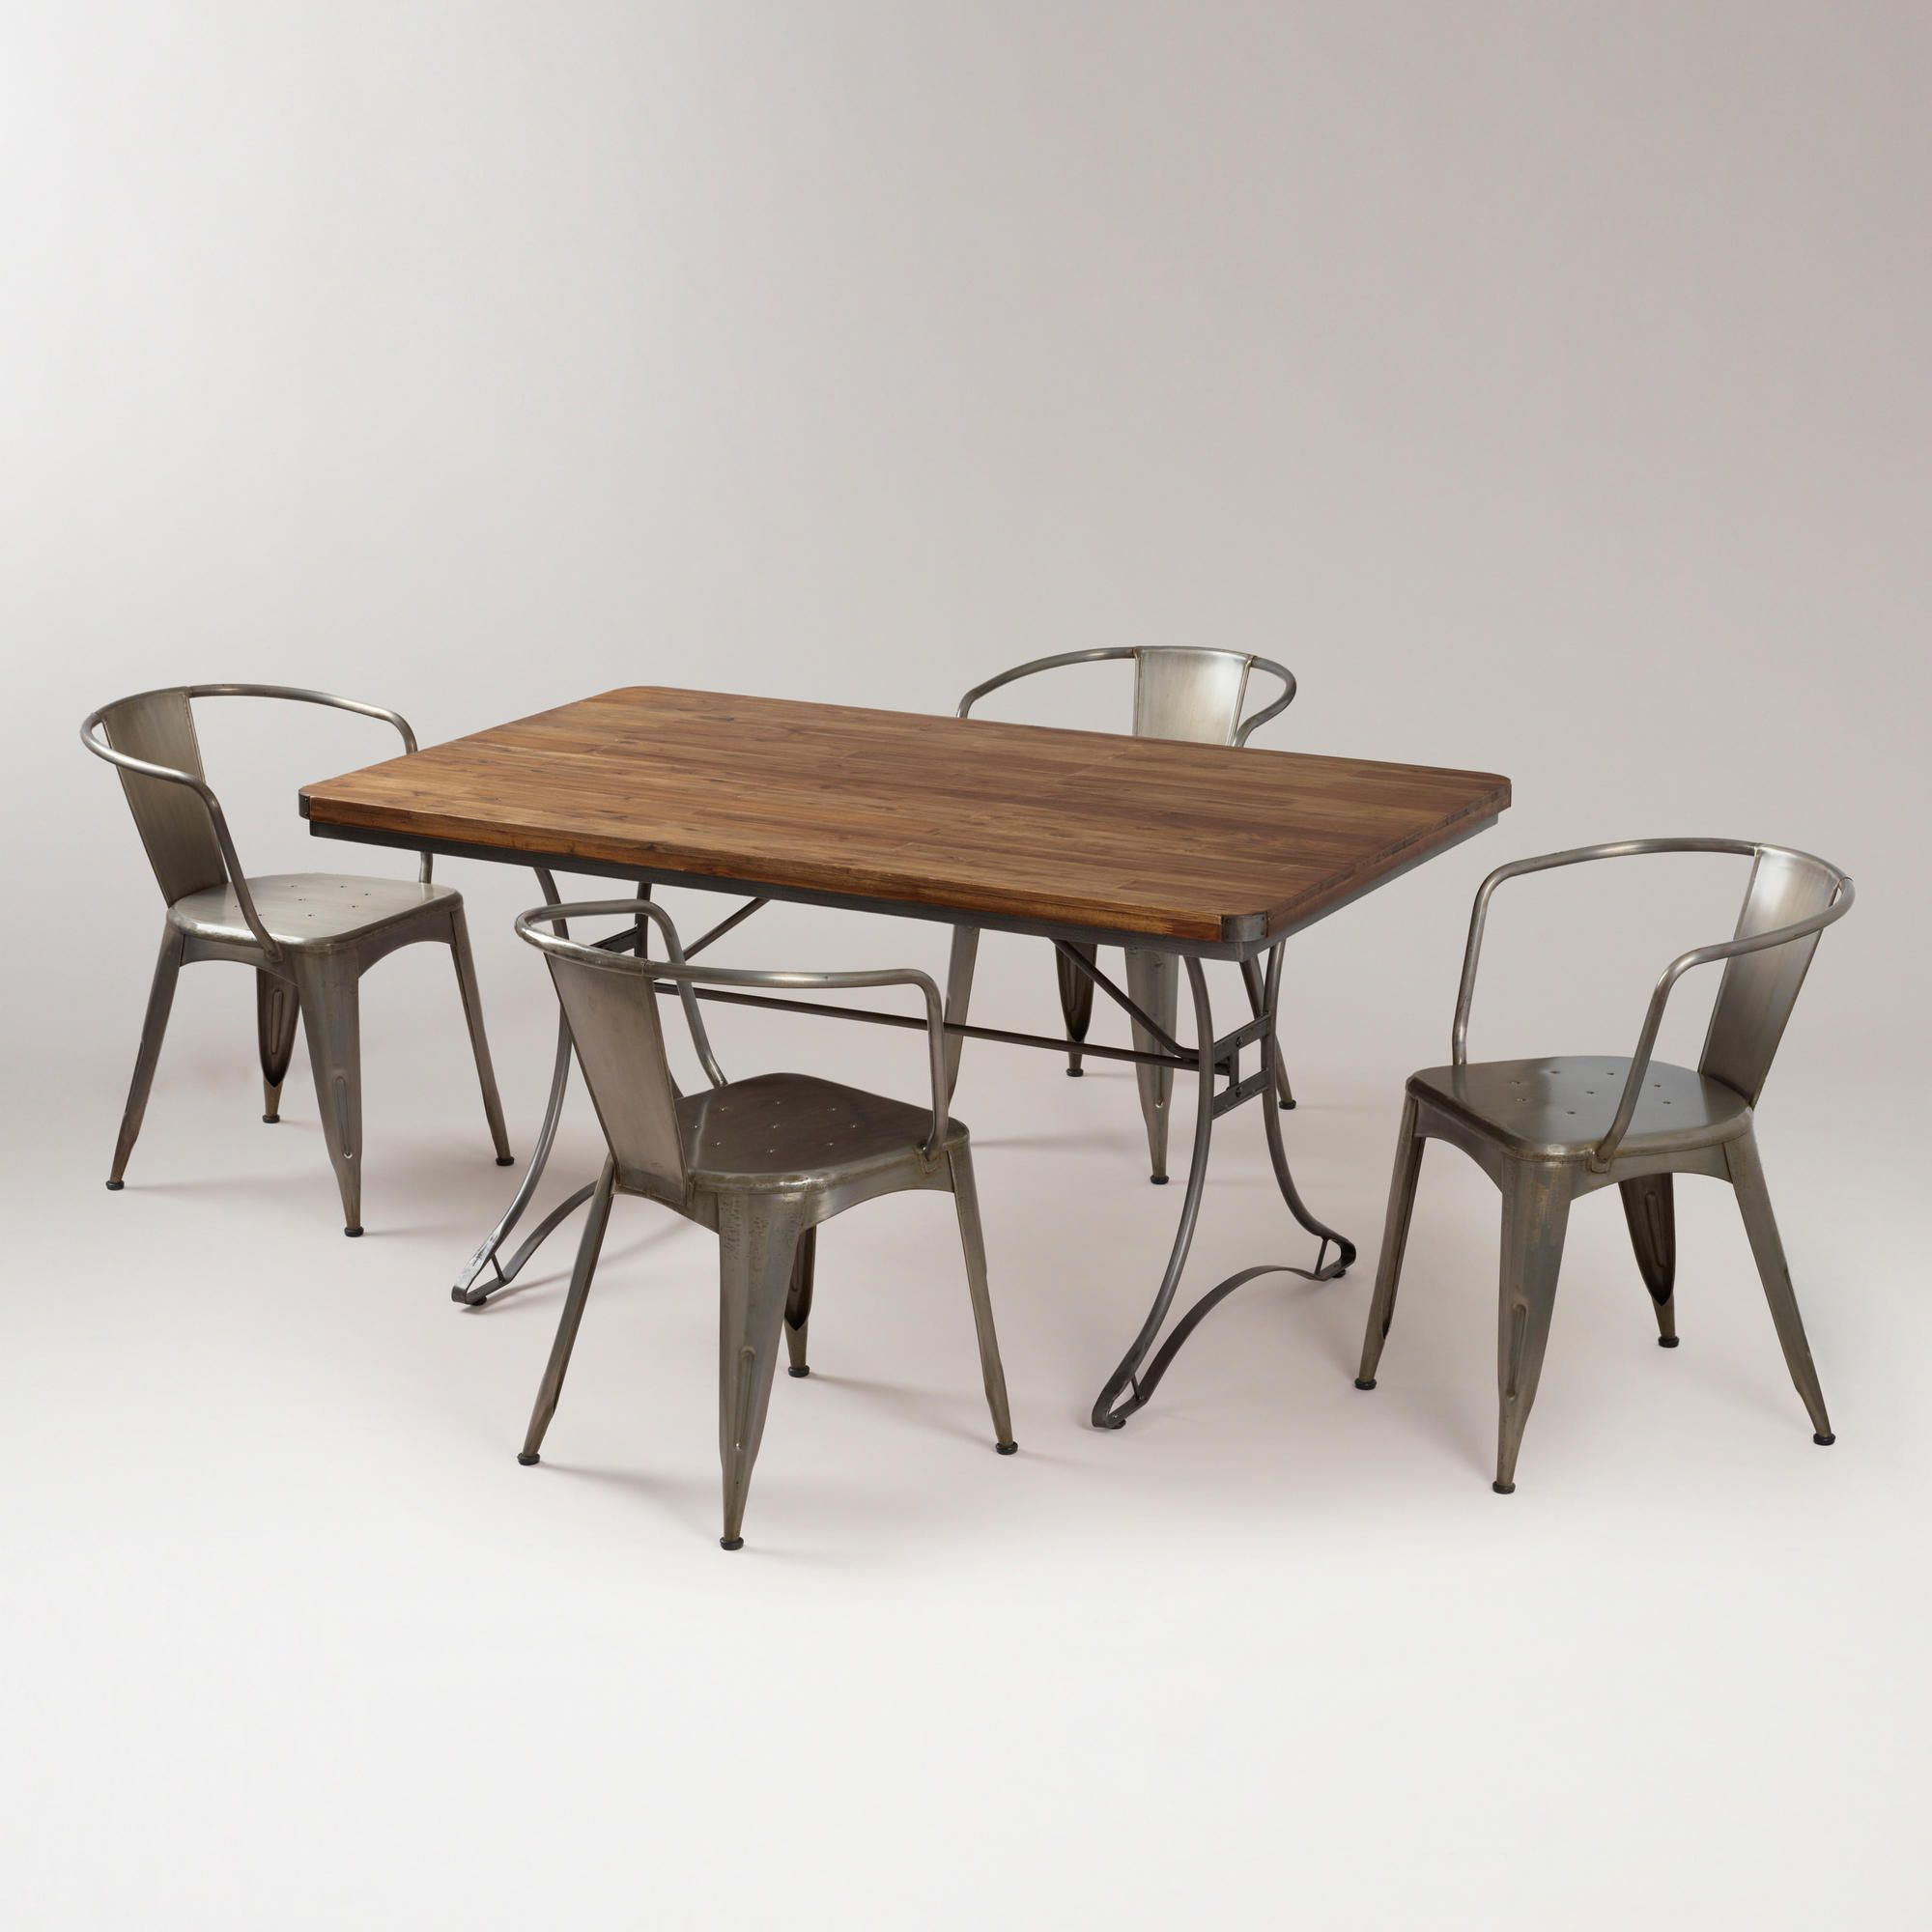 World Market Regarding 2018 Acacia Wood Dining Tables With Sheet Metal Base (View 10 of 30)